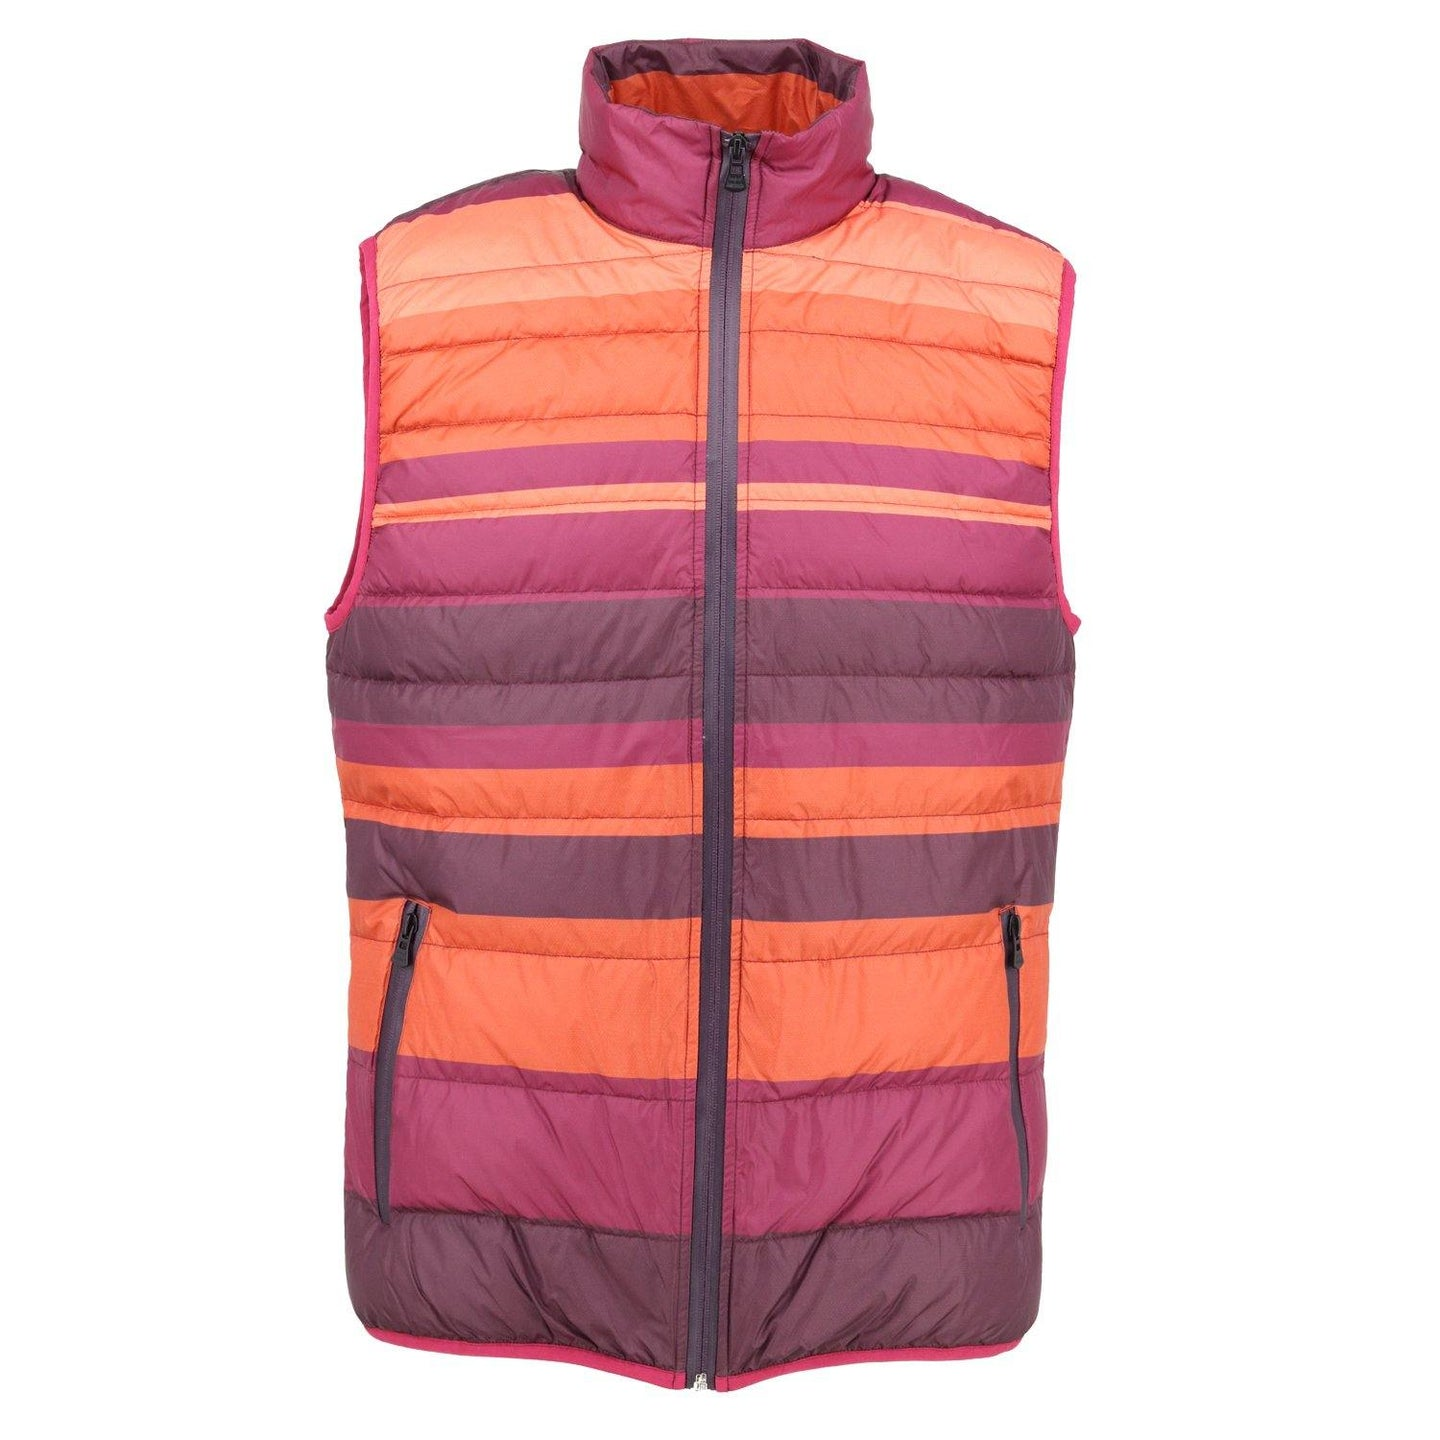 DUCK Striped Down Vest Warm